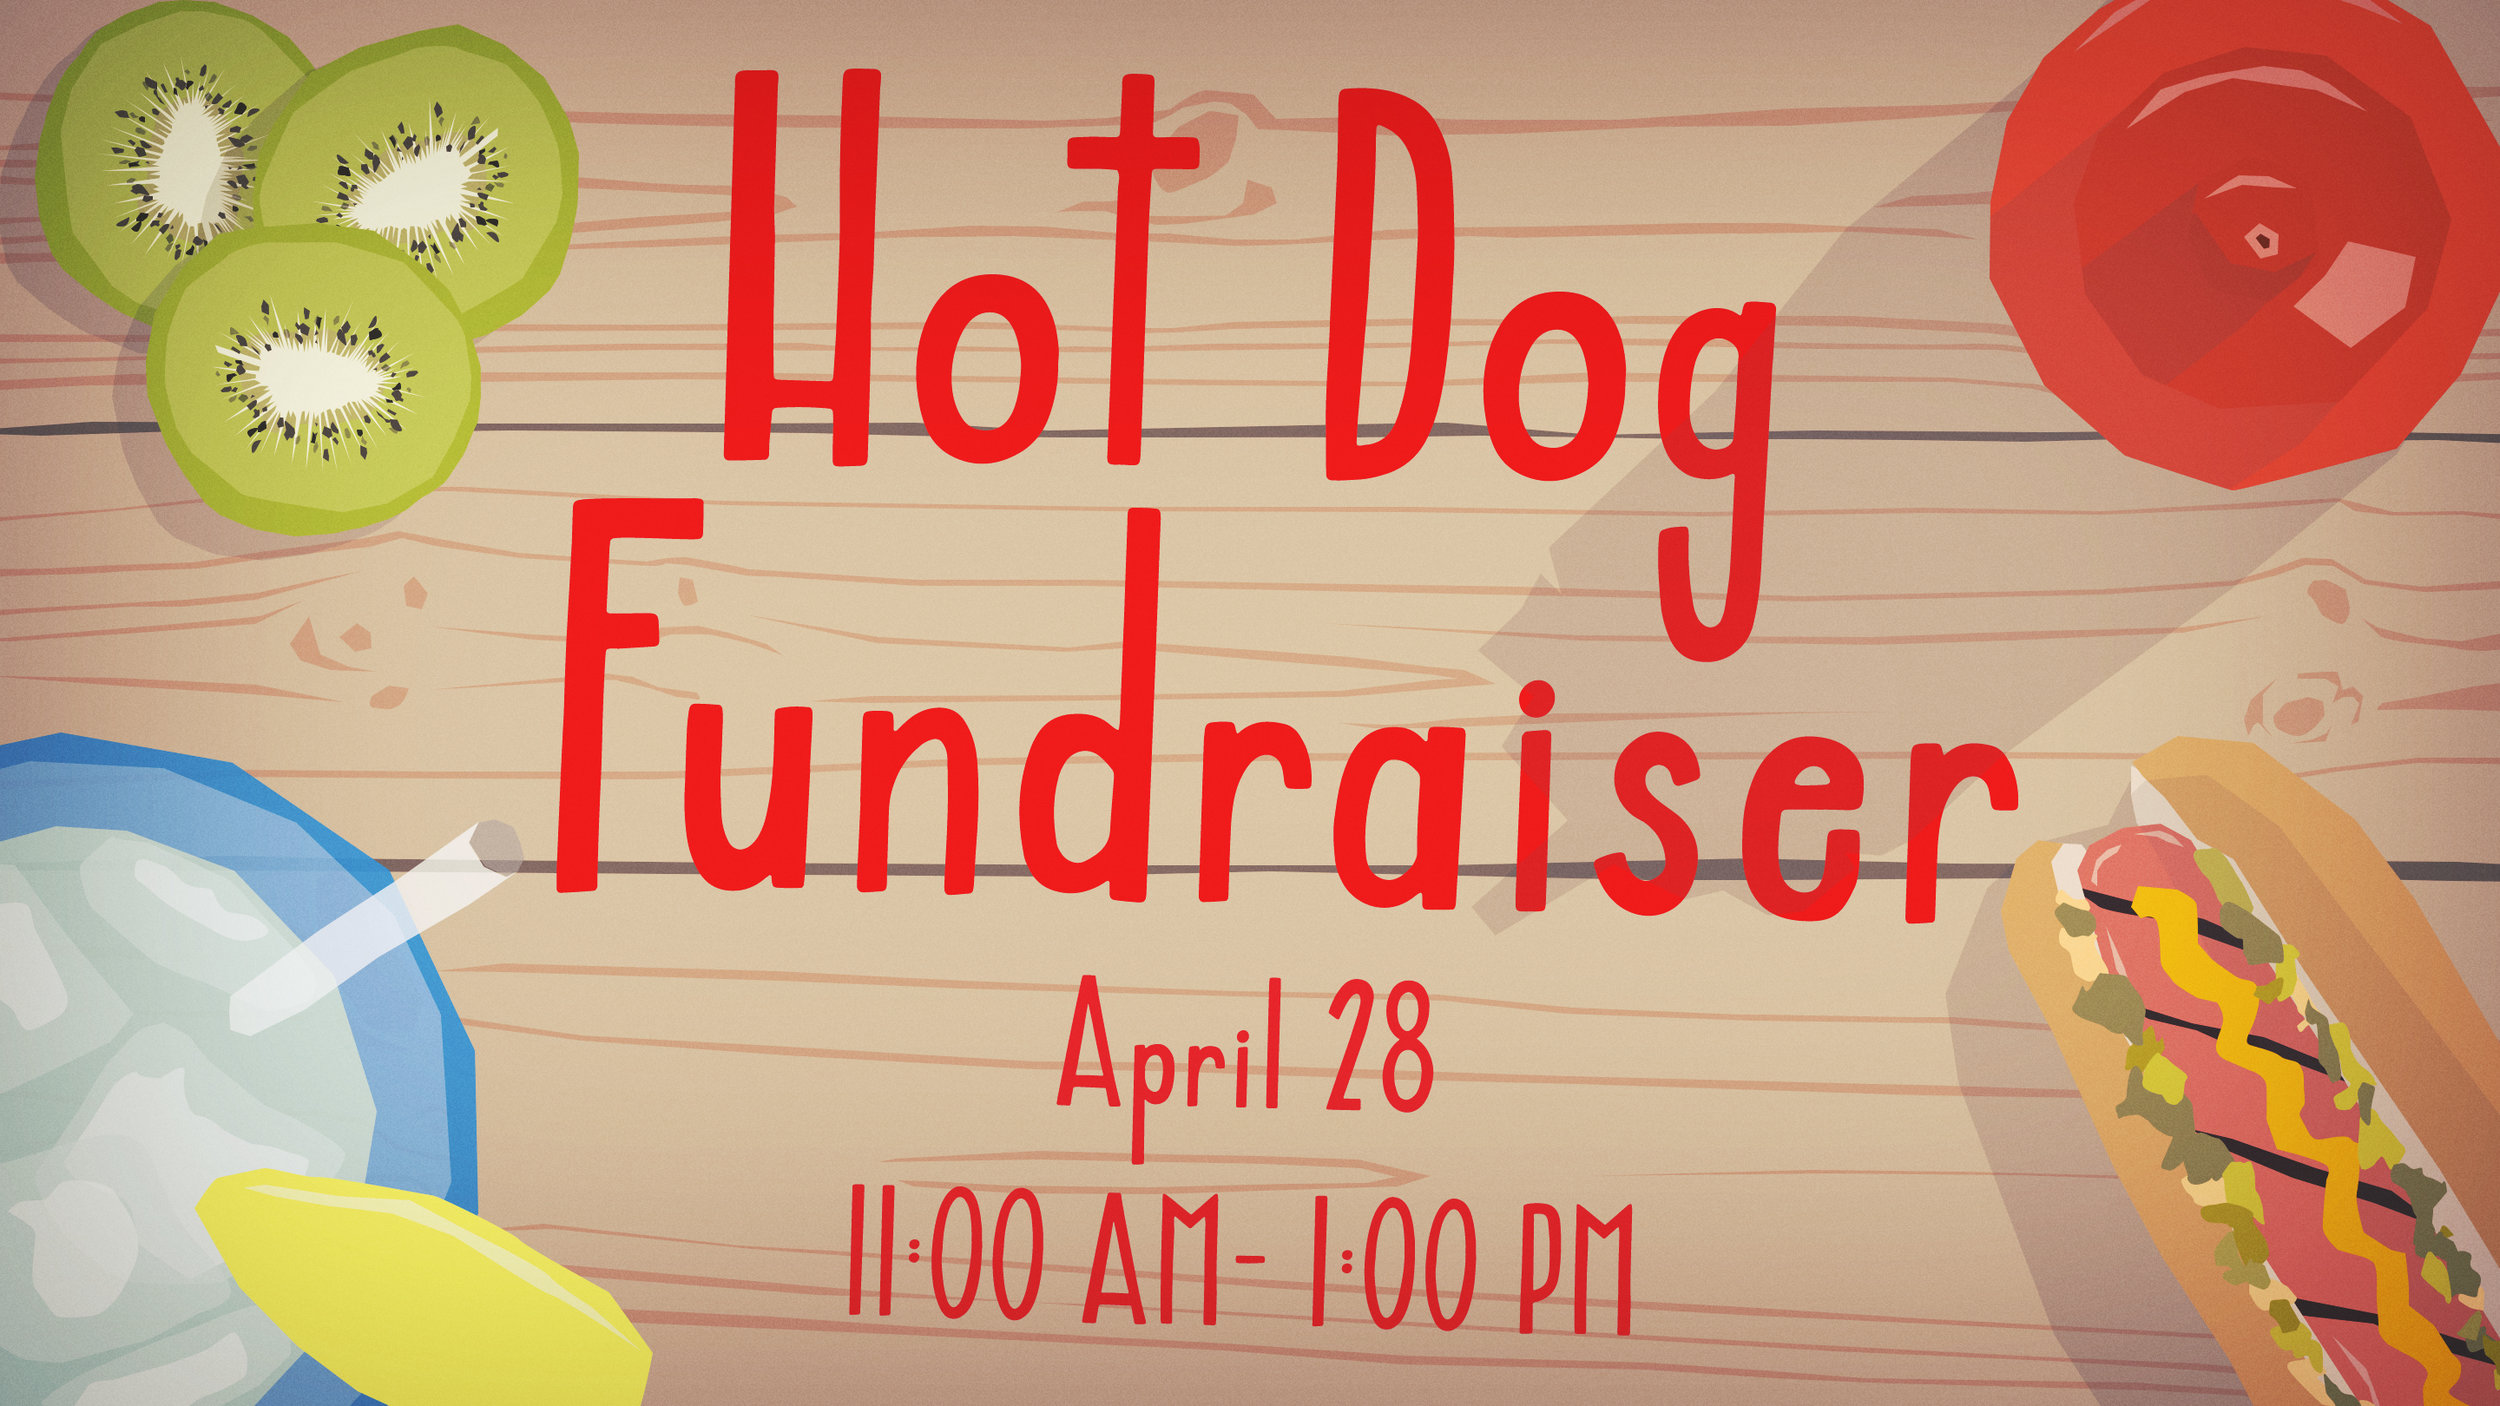 Hot_Dog_Fundraiser.jpg